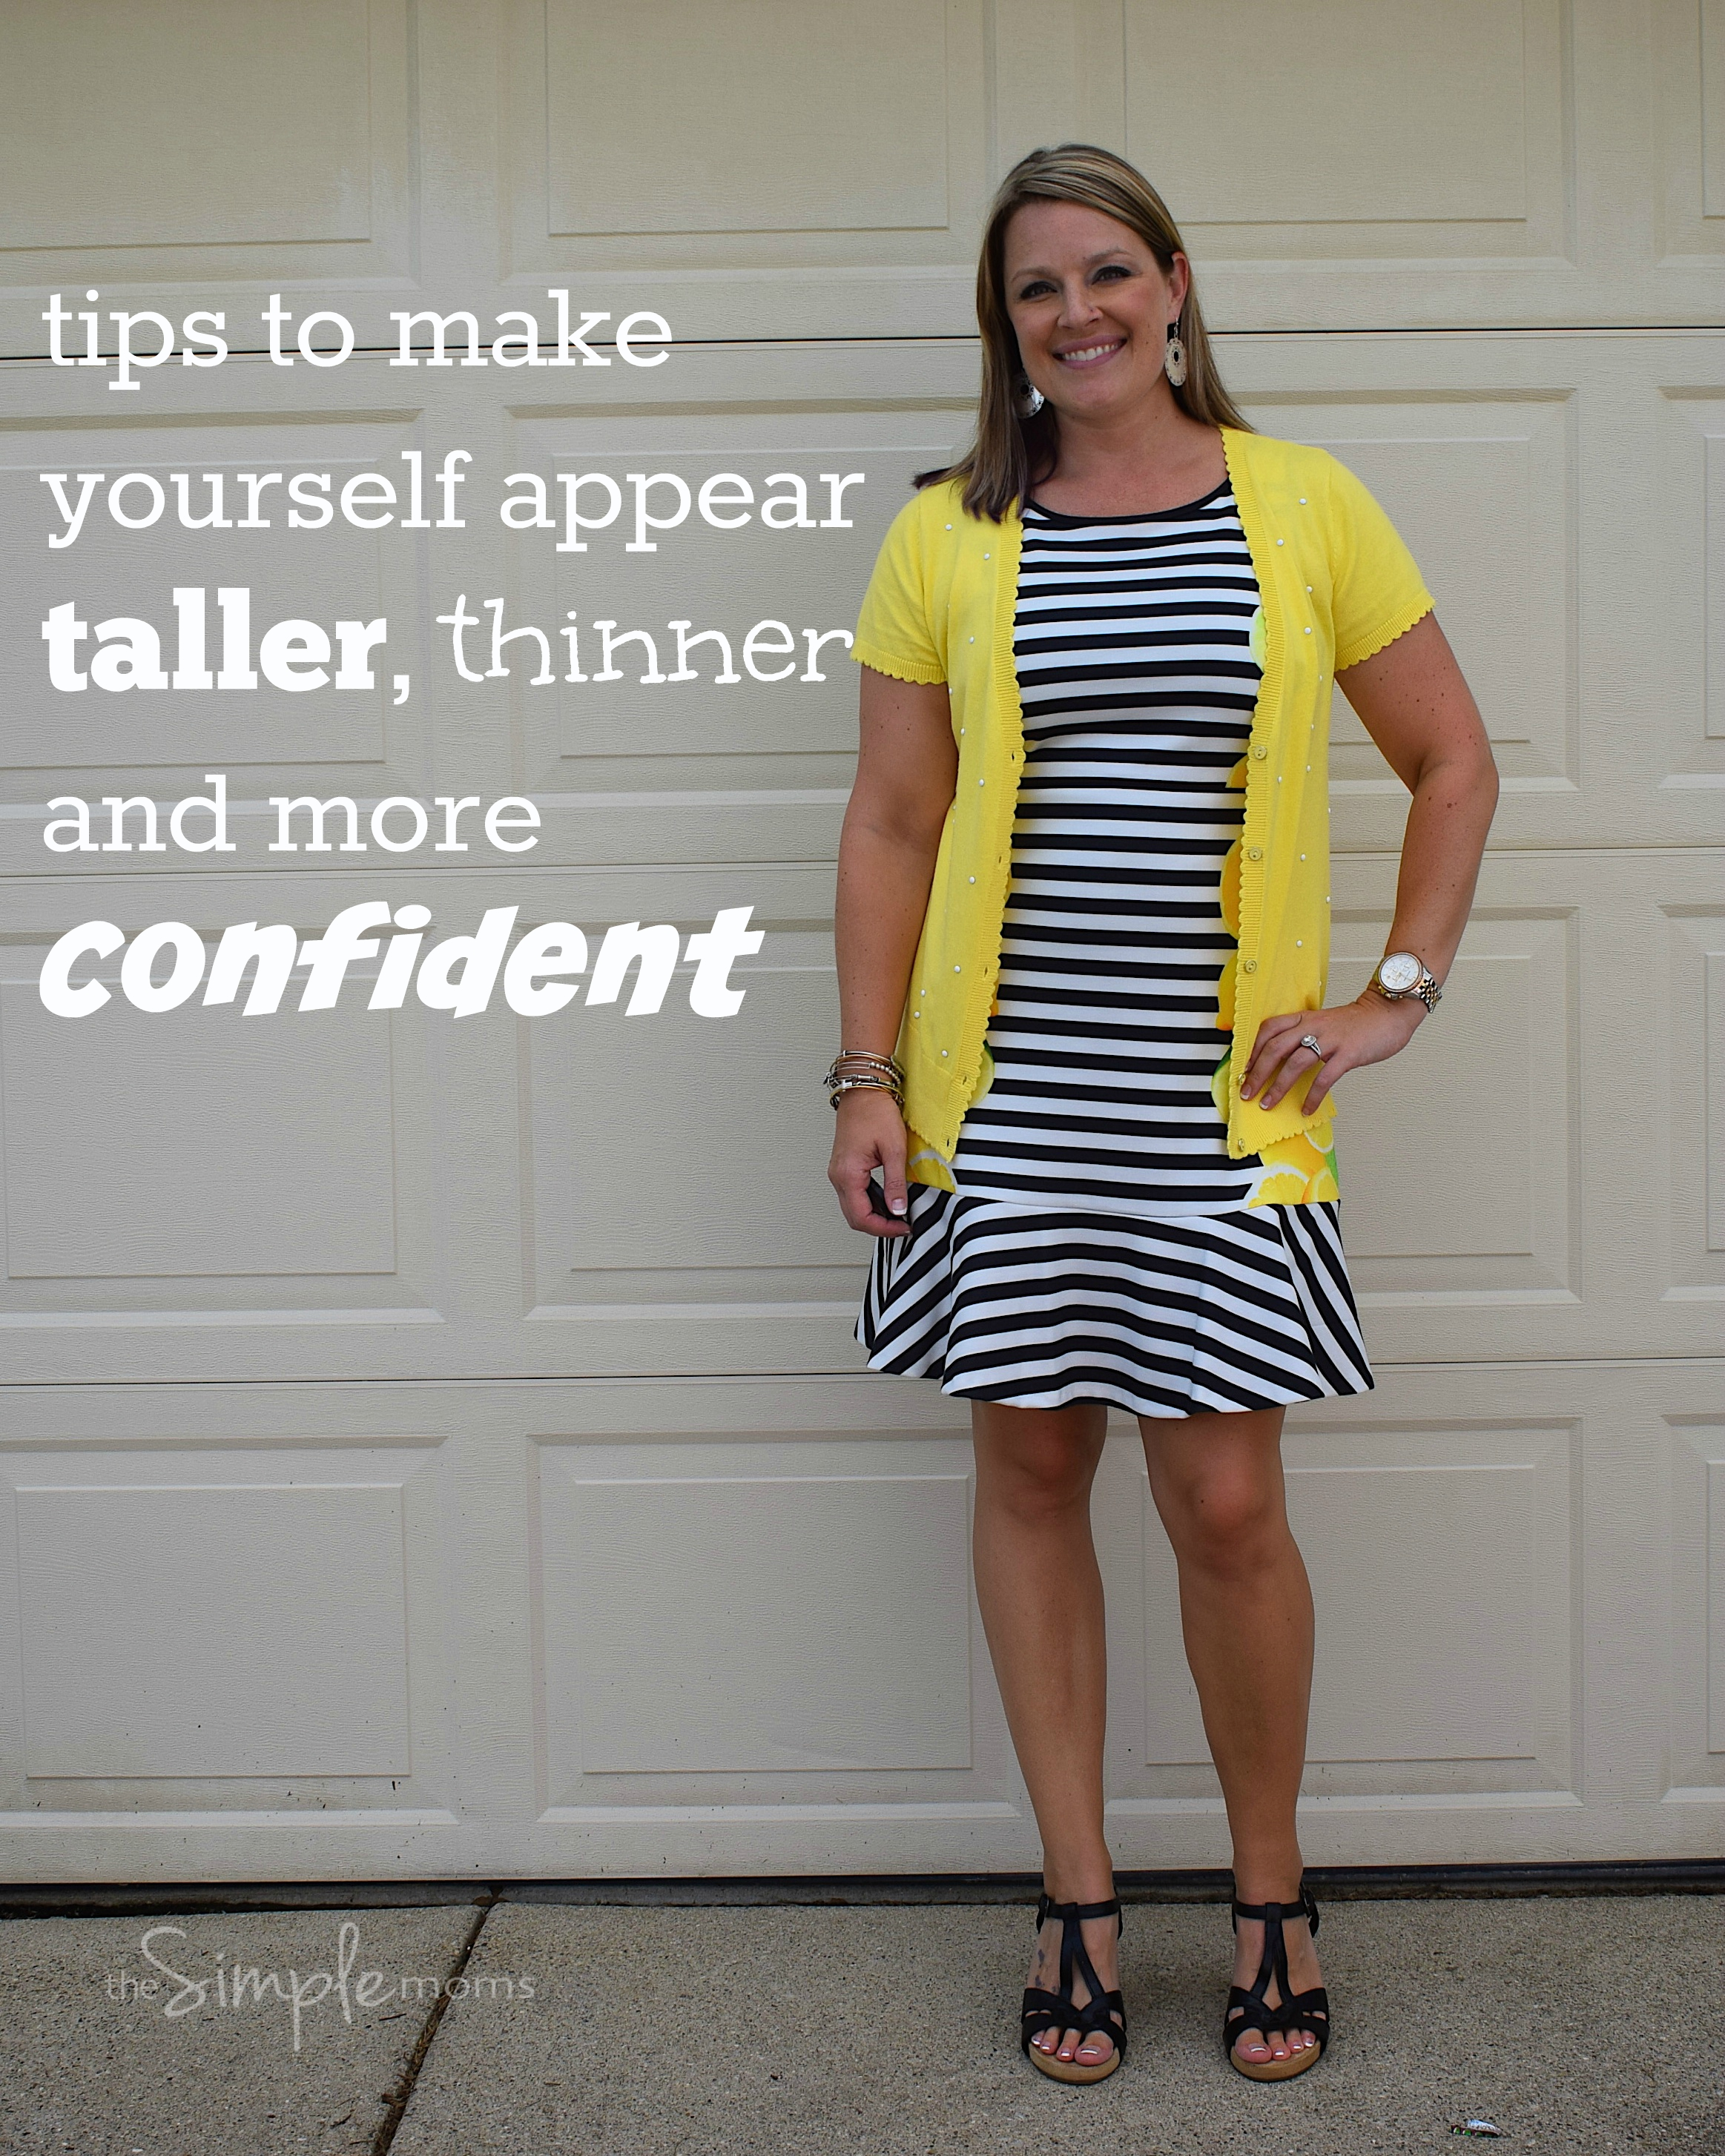 tips to make yourself appear taller, thinner and more confident